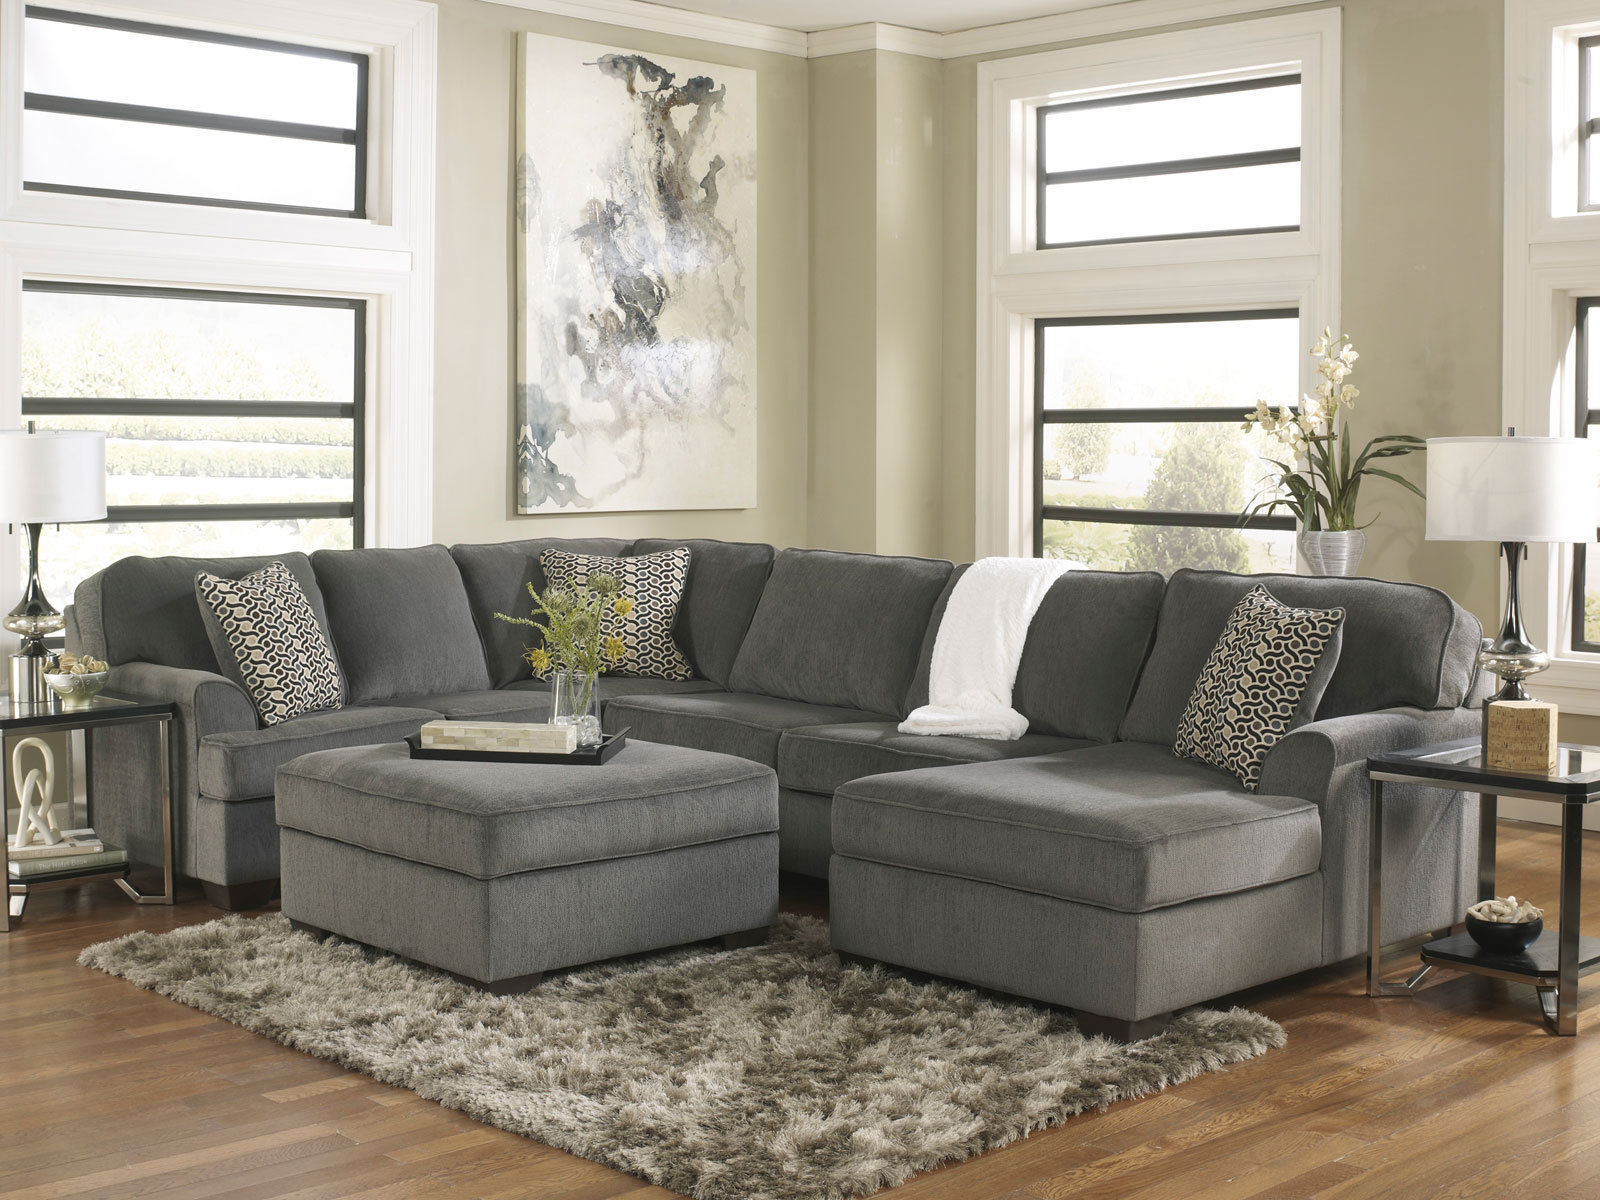 Gray Oversized Chair Sole Oversized Modern Gray Fabric Sofa Couch Sectional Set